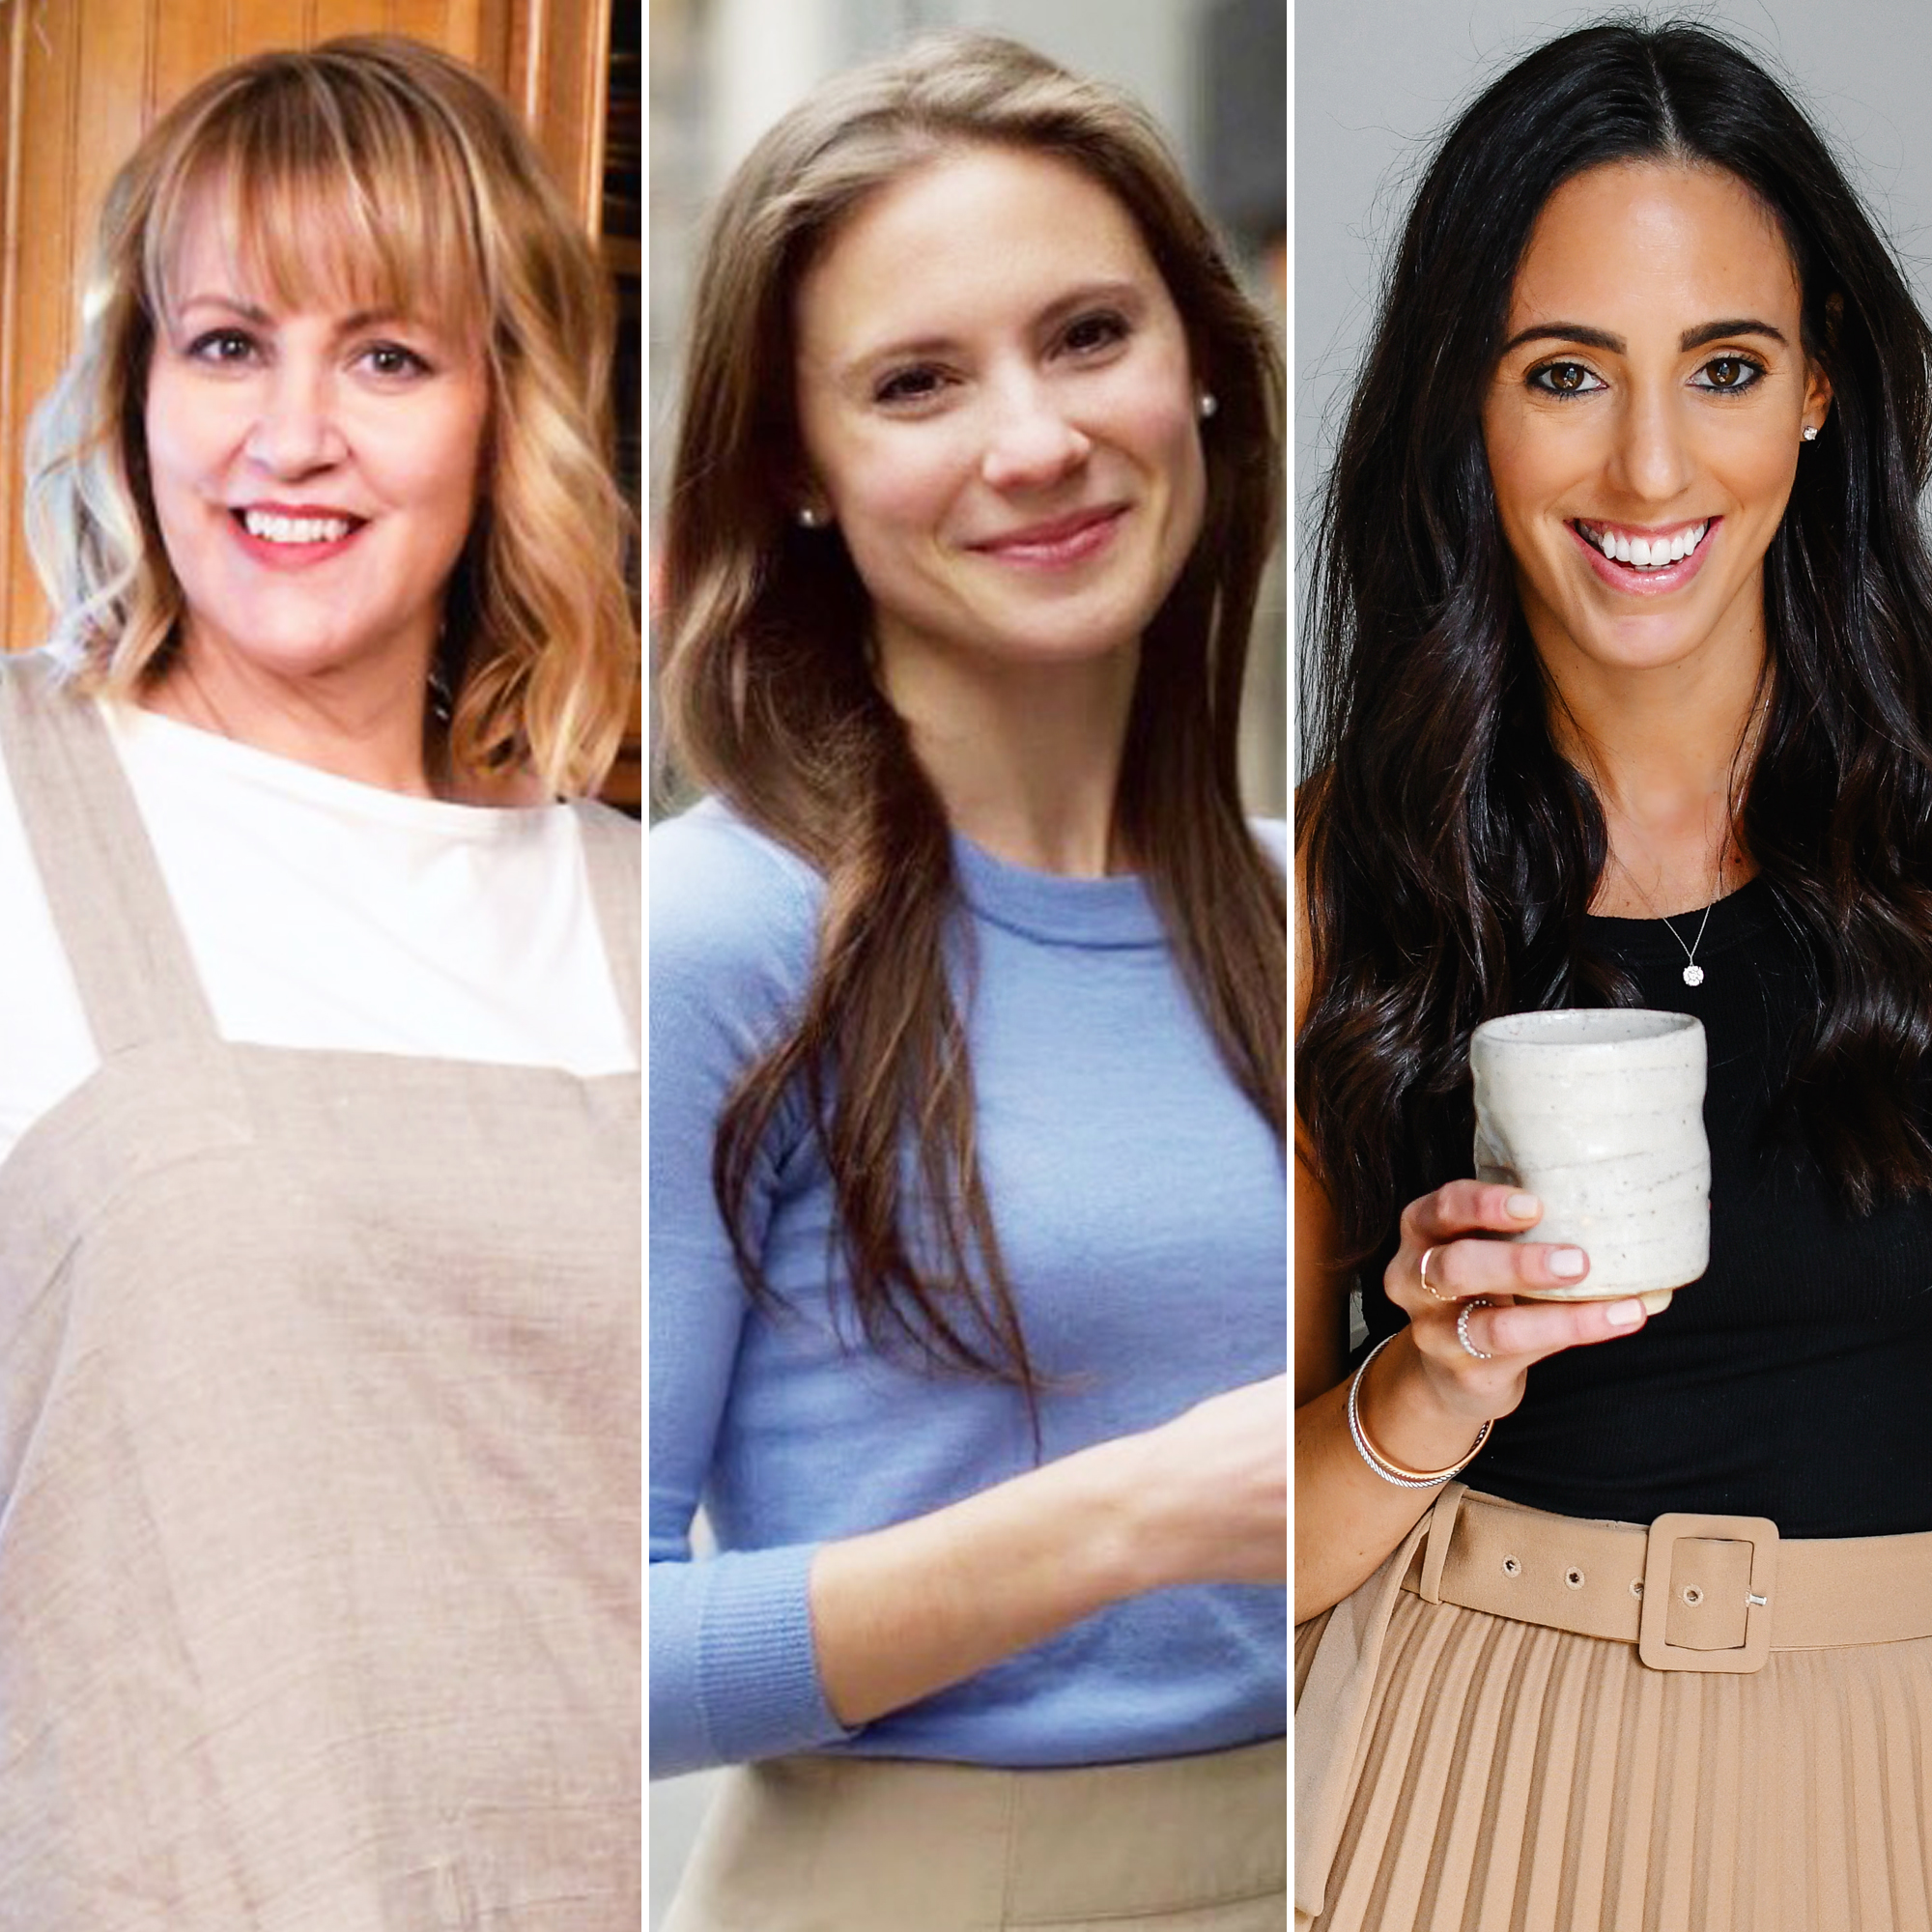 Is It Healthy? Registered Dietitians Weigh in on Keto, Intermittent Fasting and More Diet Trends